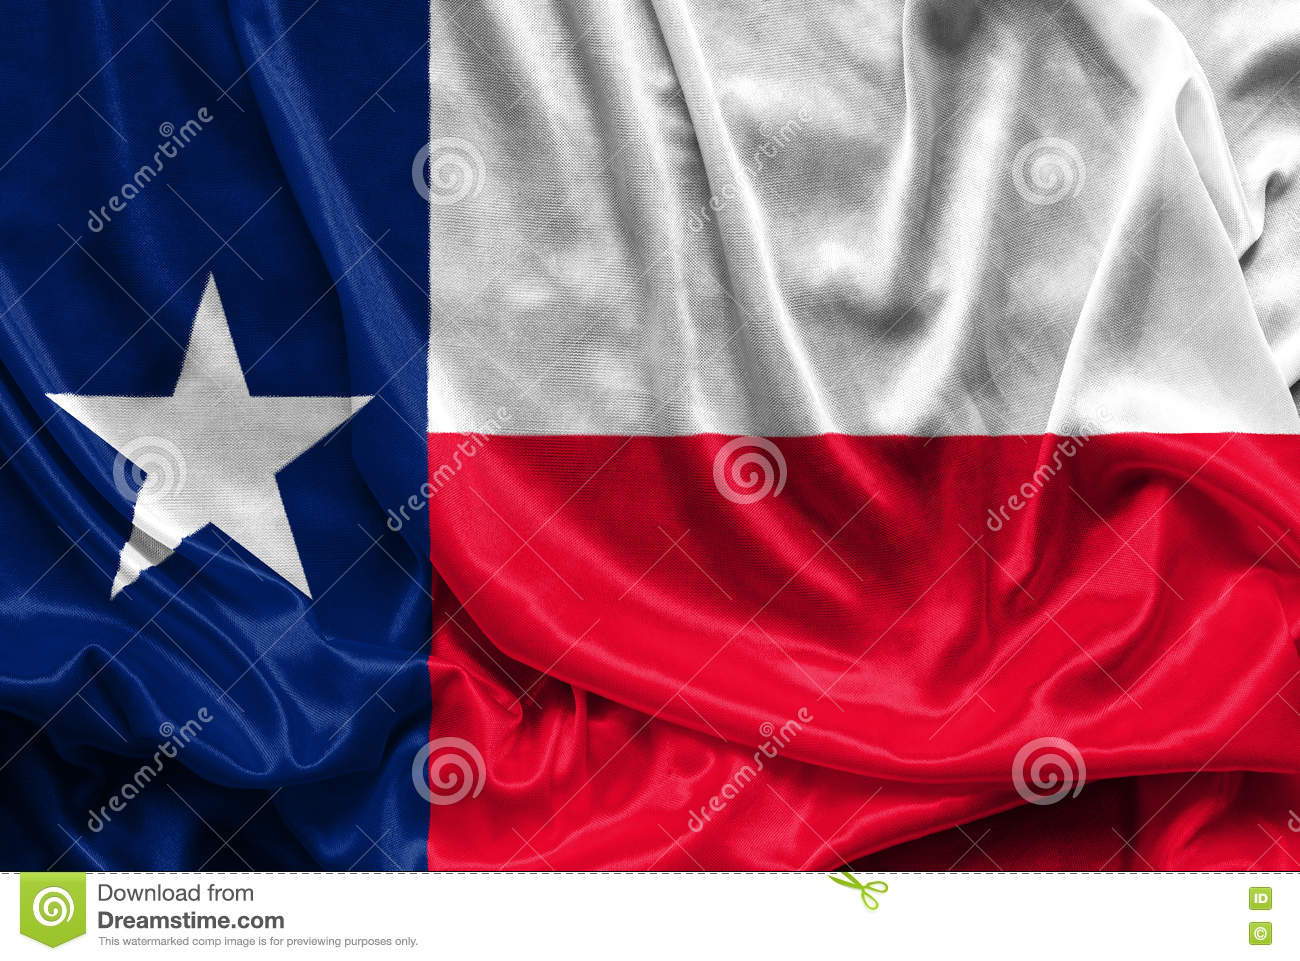 Texas Flag - Crumpled fabric background, wallpapers